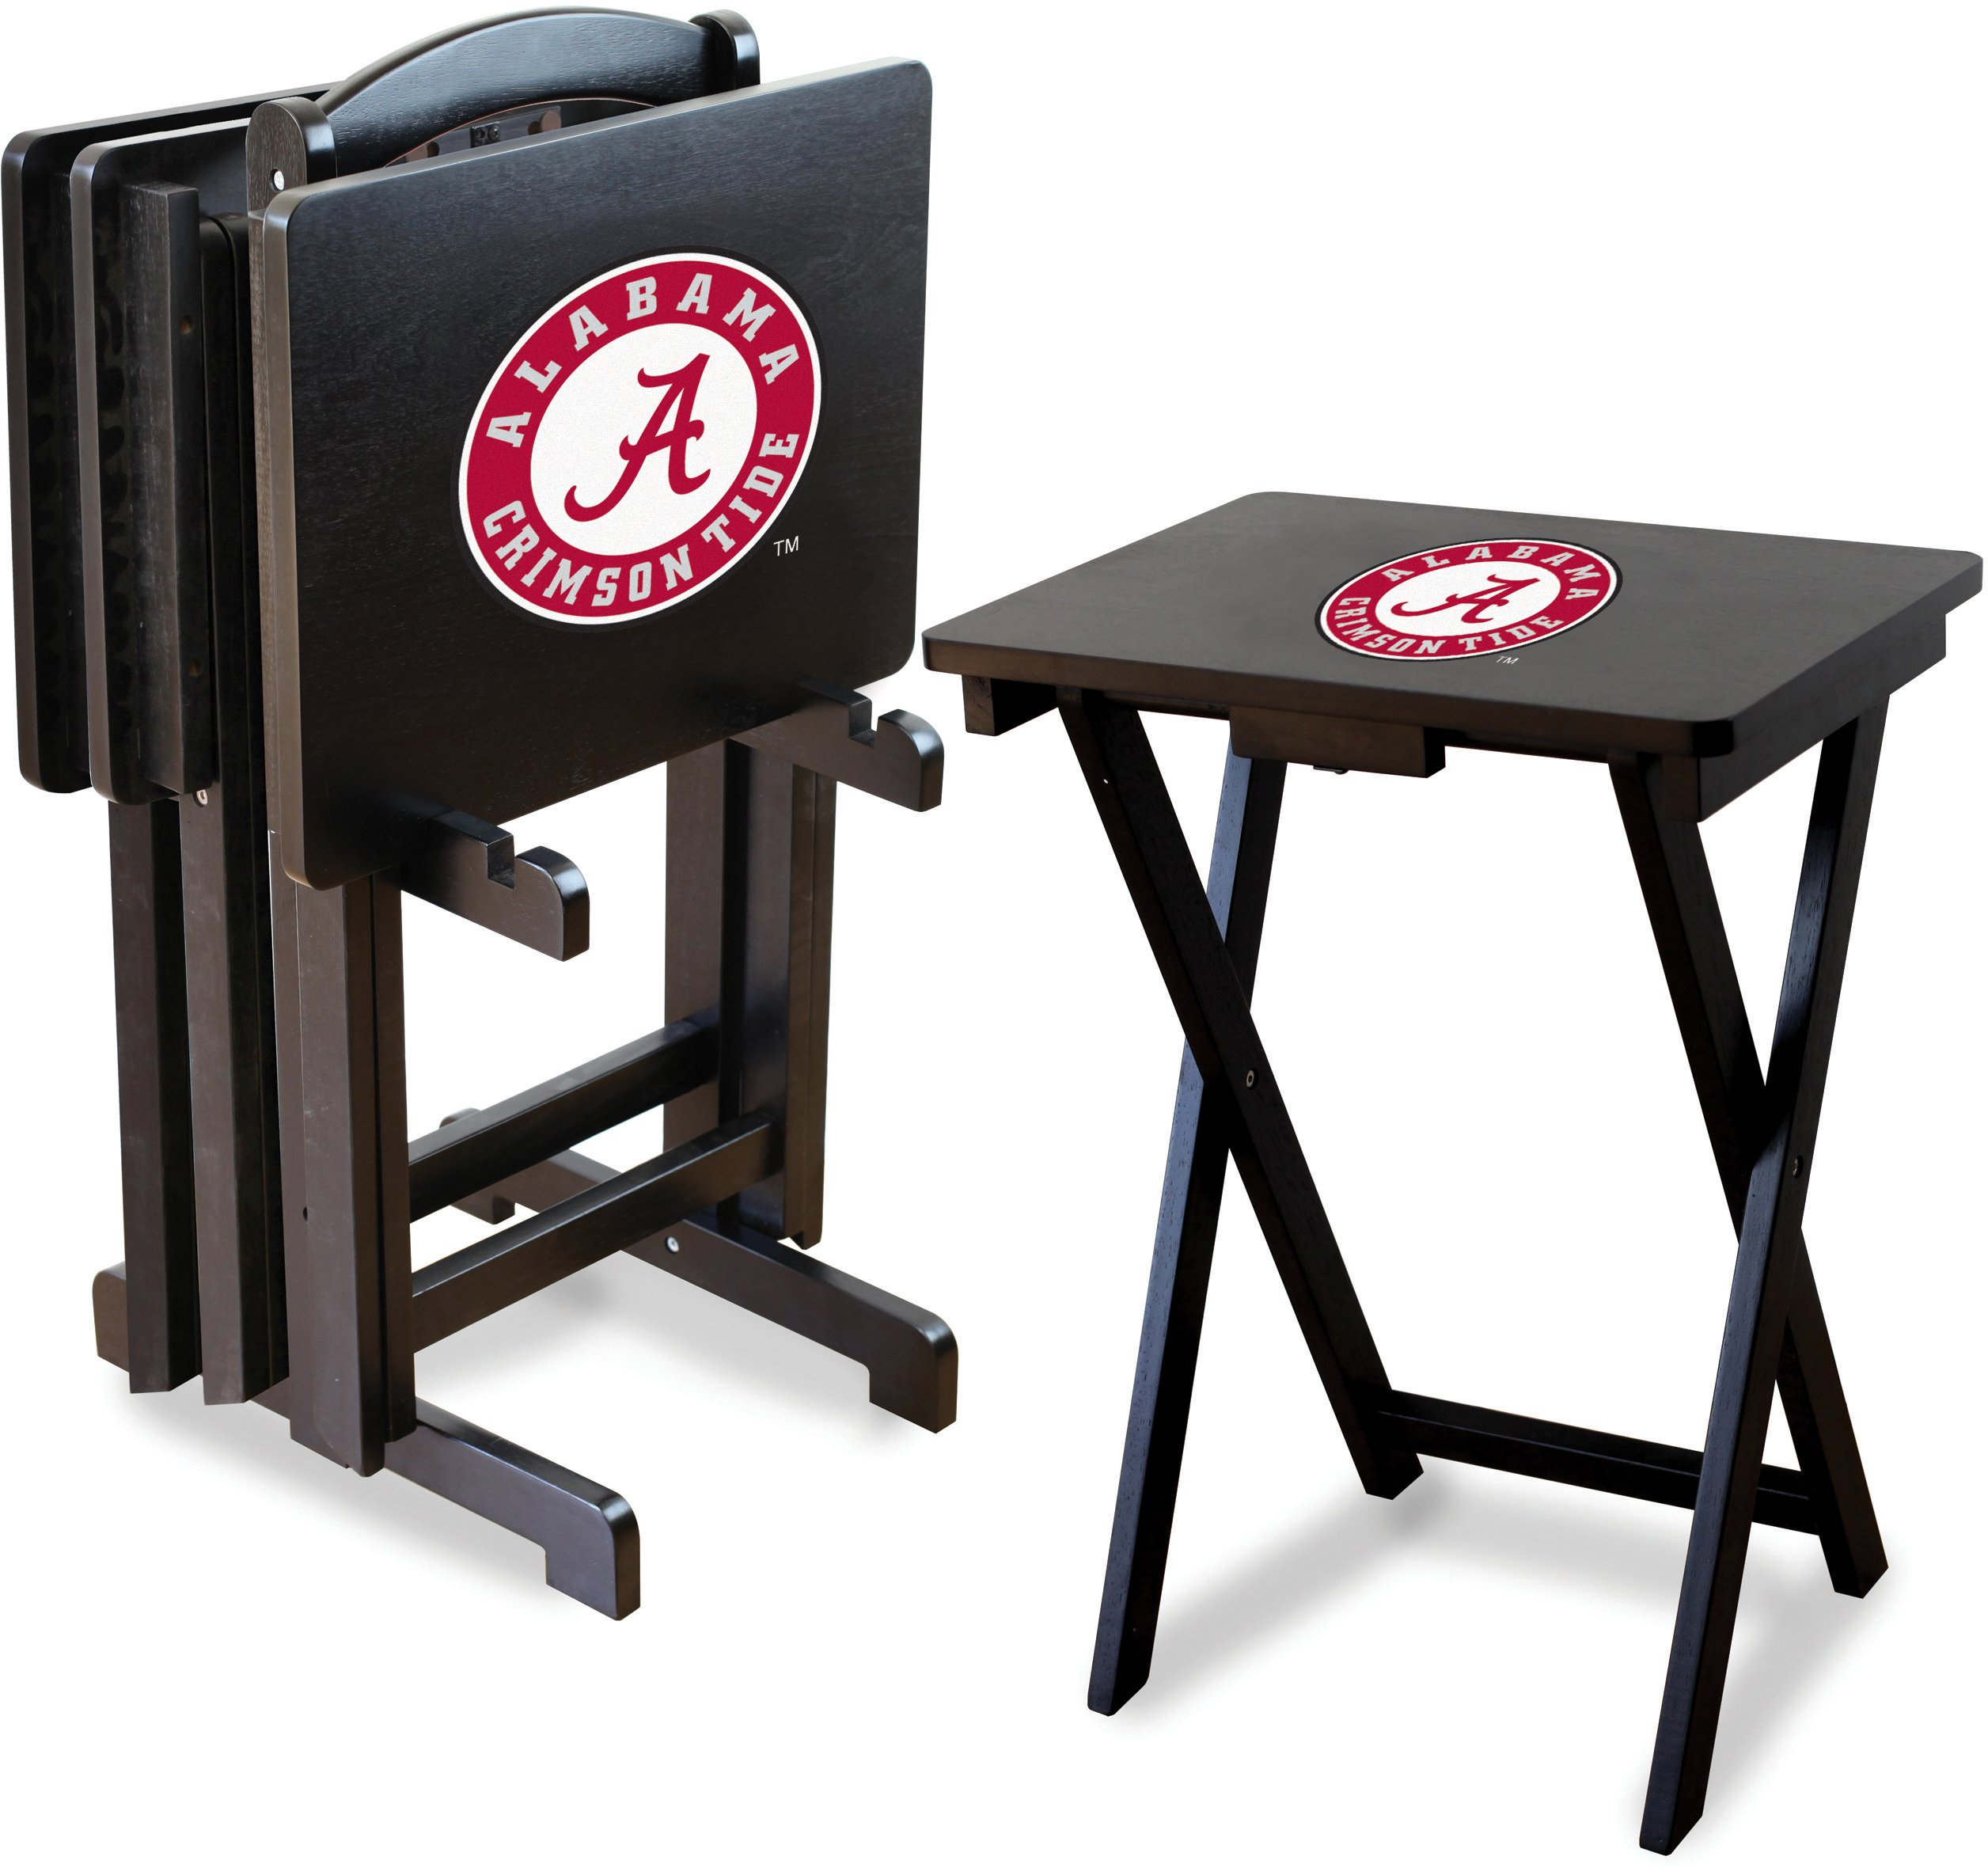 Imperial Officially Licensed NCAA Merchandise: Foldable Wood TV Tray Table Set with Stand, Alabama Crimson Tide by Imperial